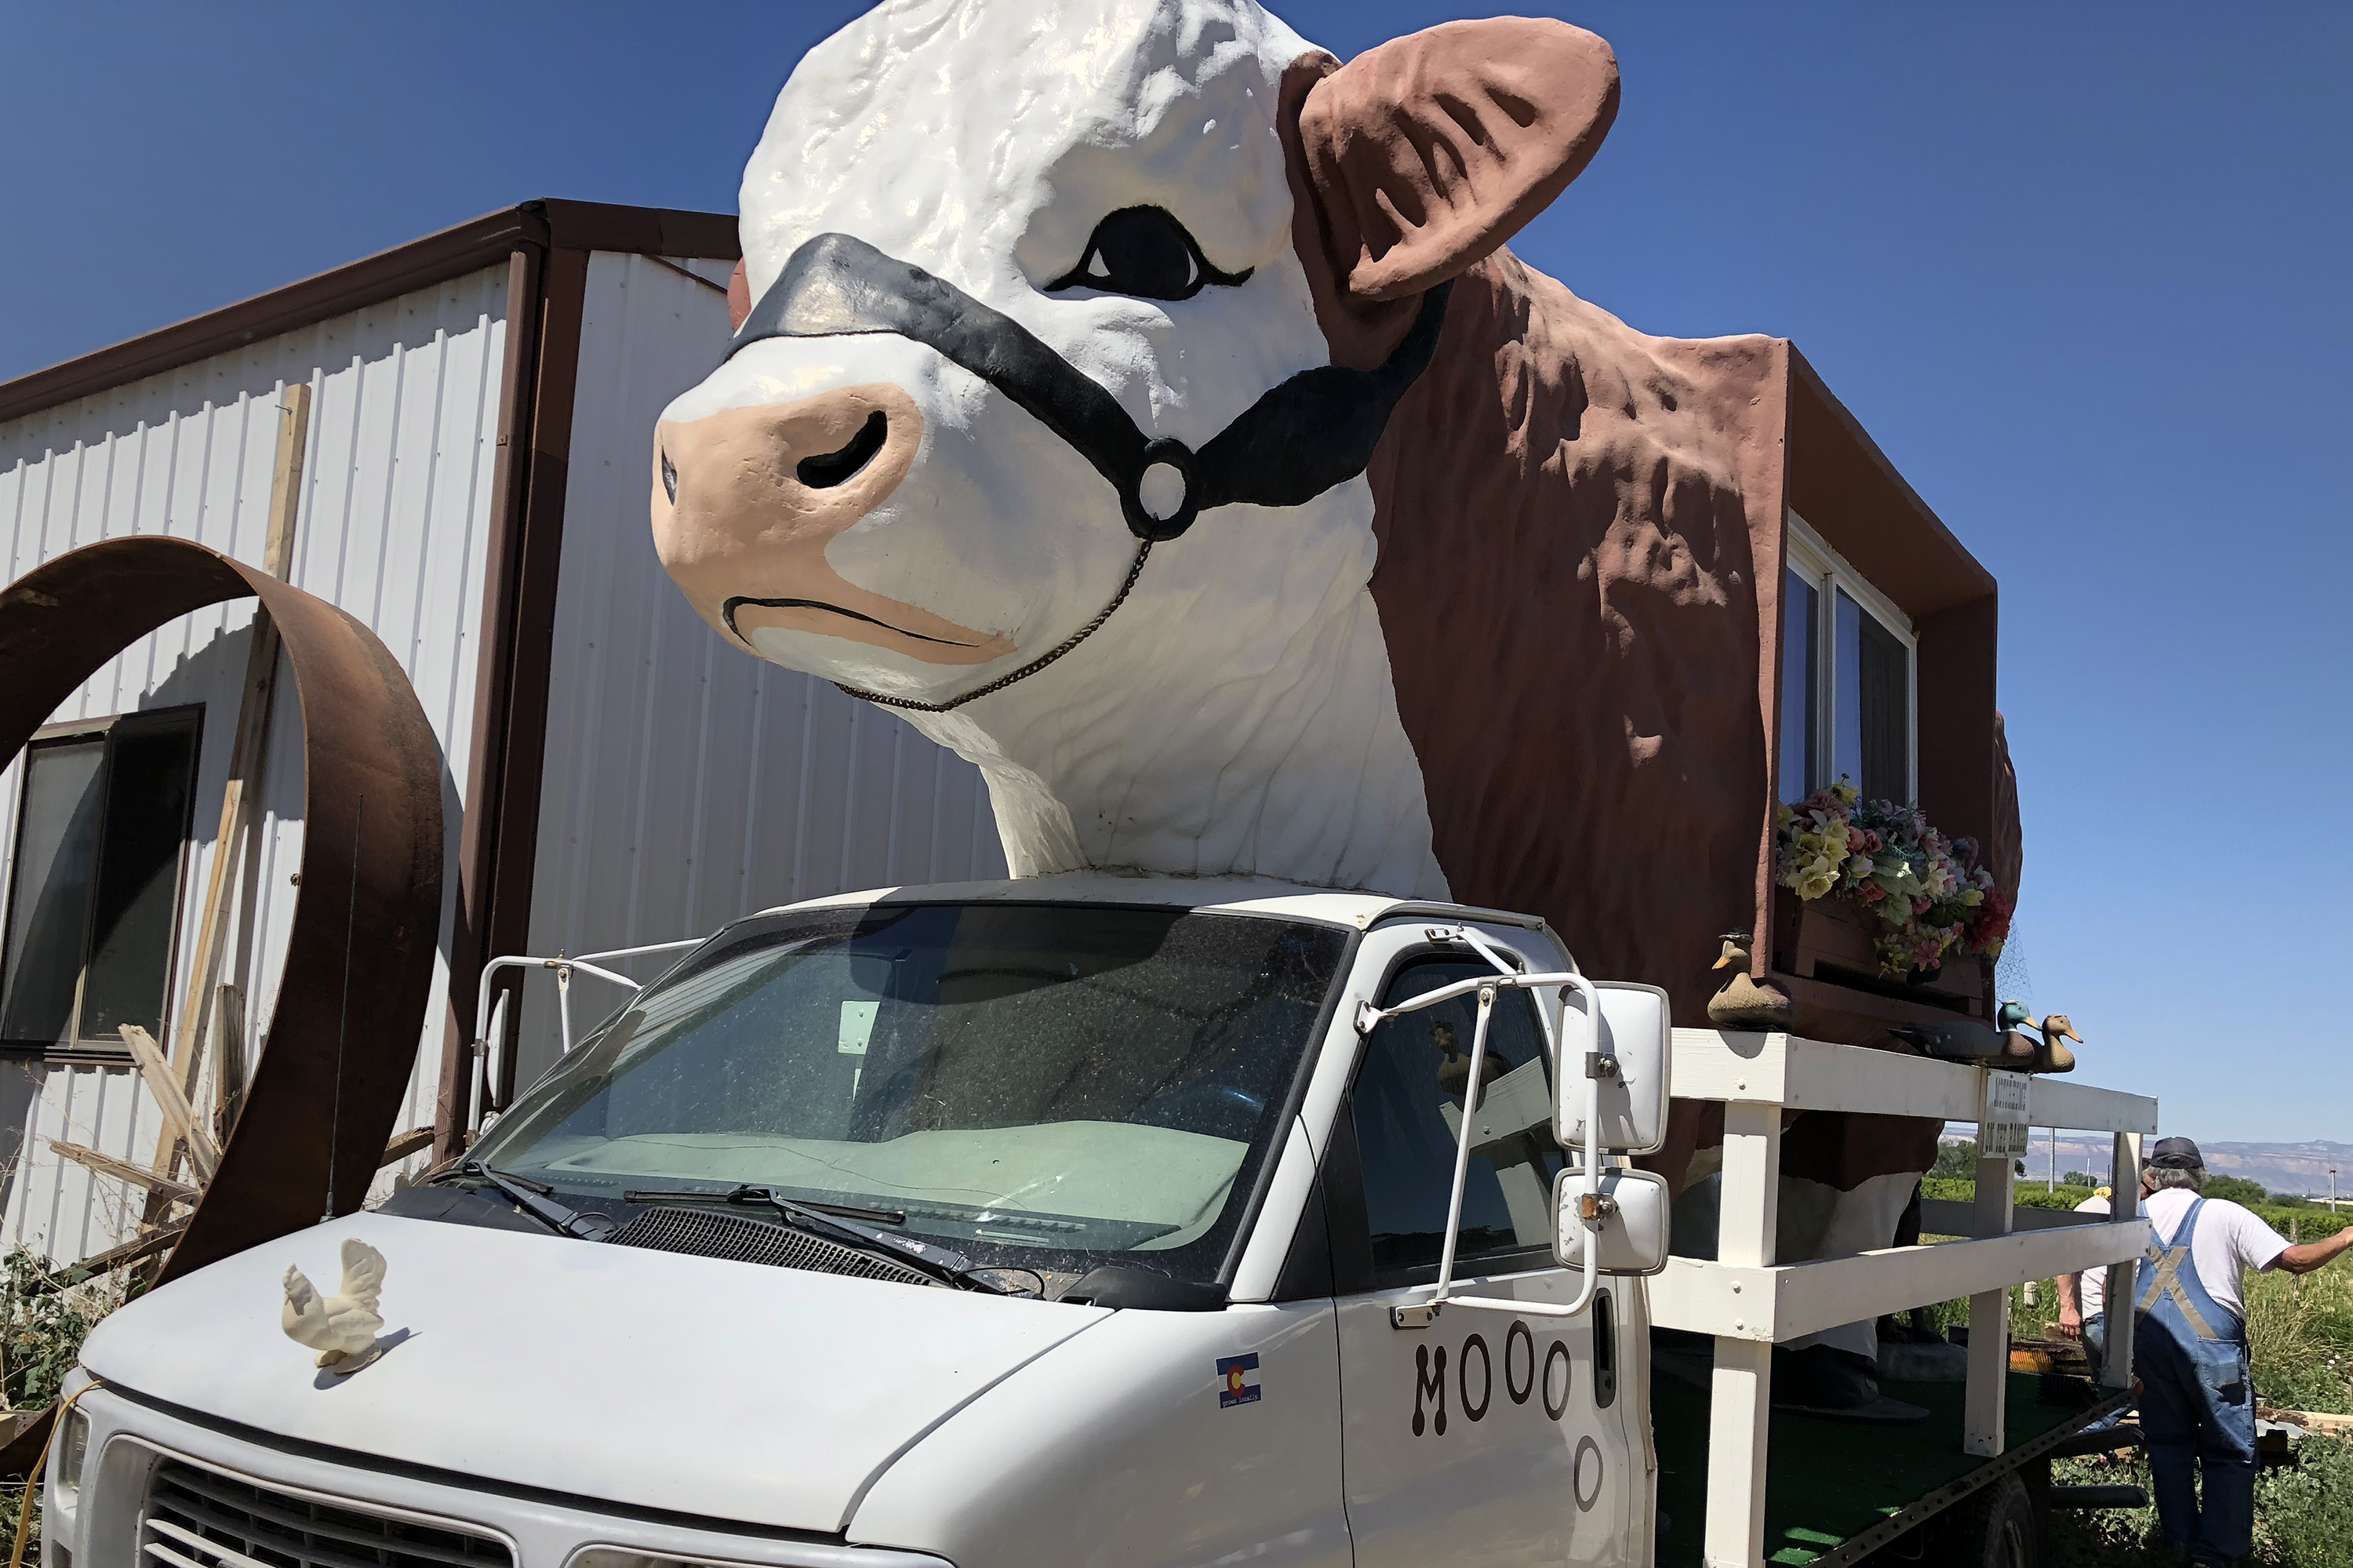 <p>Lyle Nichols repurposed a cow statue that once stood outside a restaurant and made his cow motorhome, complete with a mooing horn.</p>